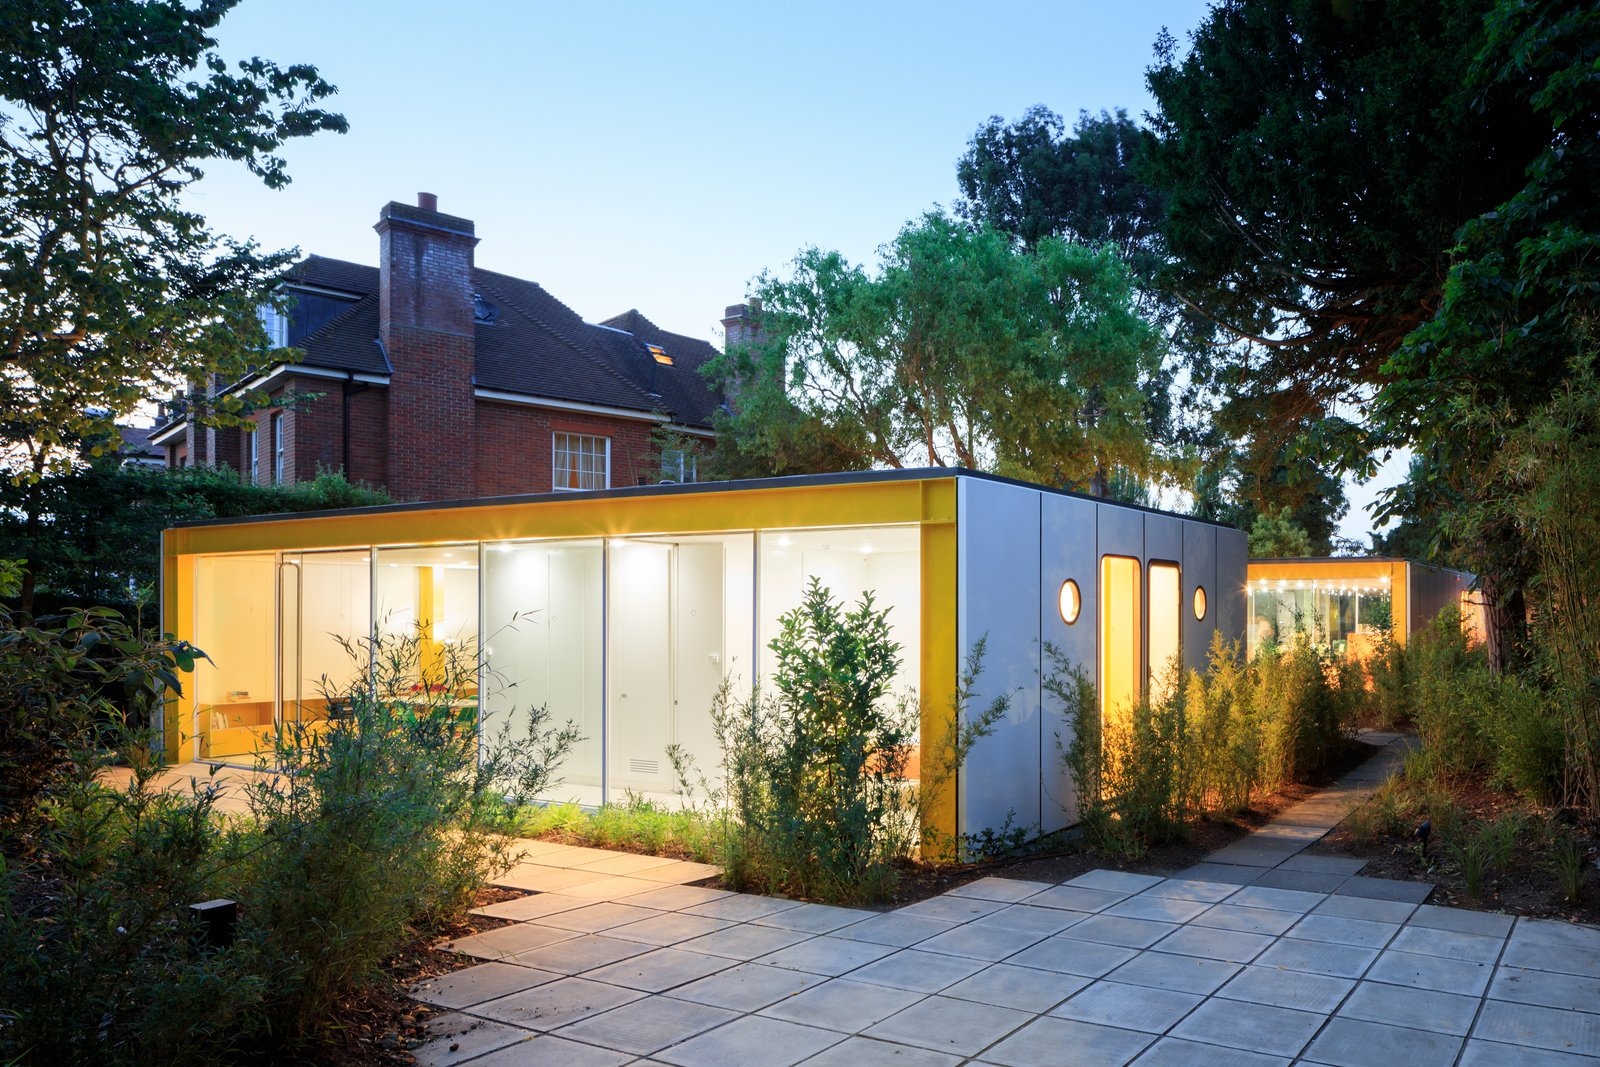 Photo 6 of 14 in Fully Renovated, Wimbledon House by Richard Rogers Hosts New Architecture Fellows in London